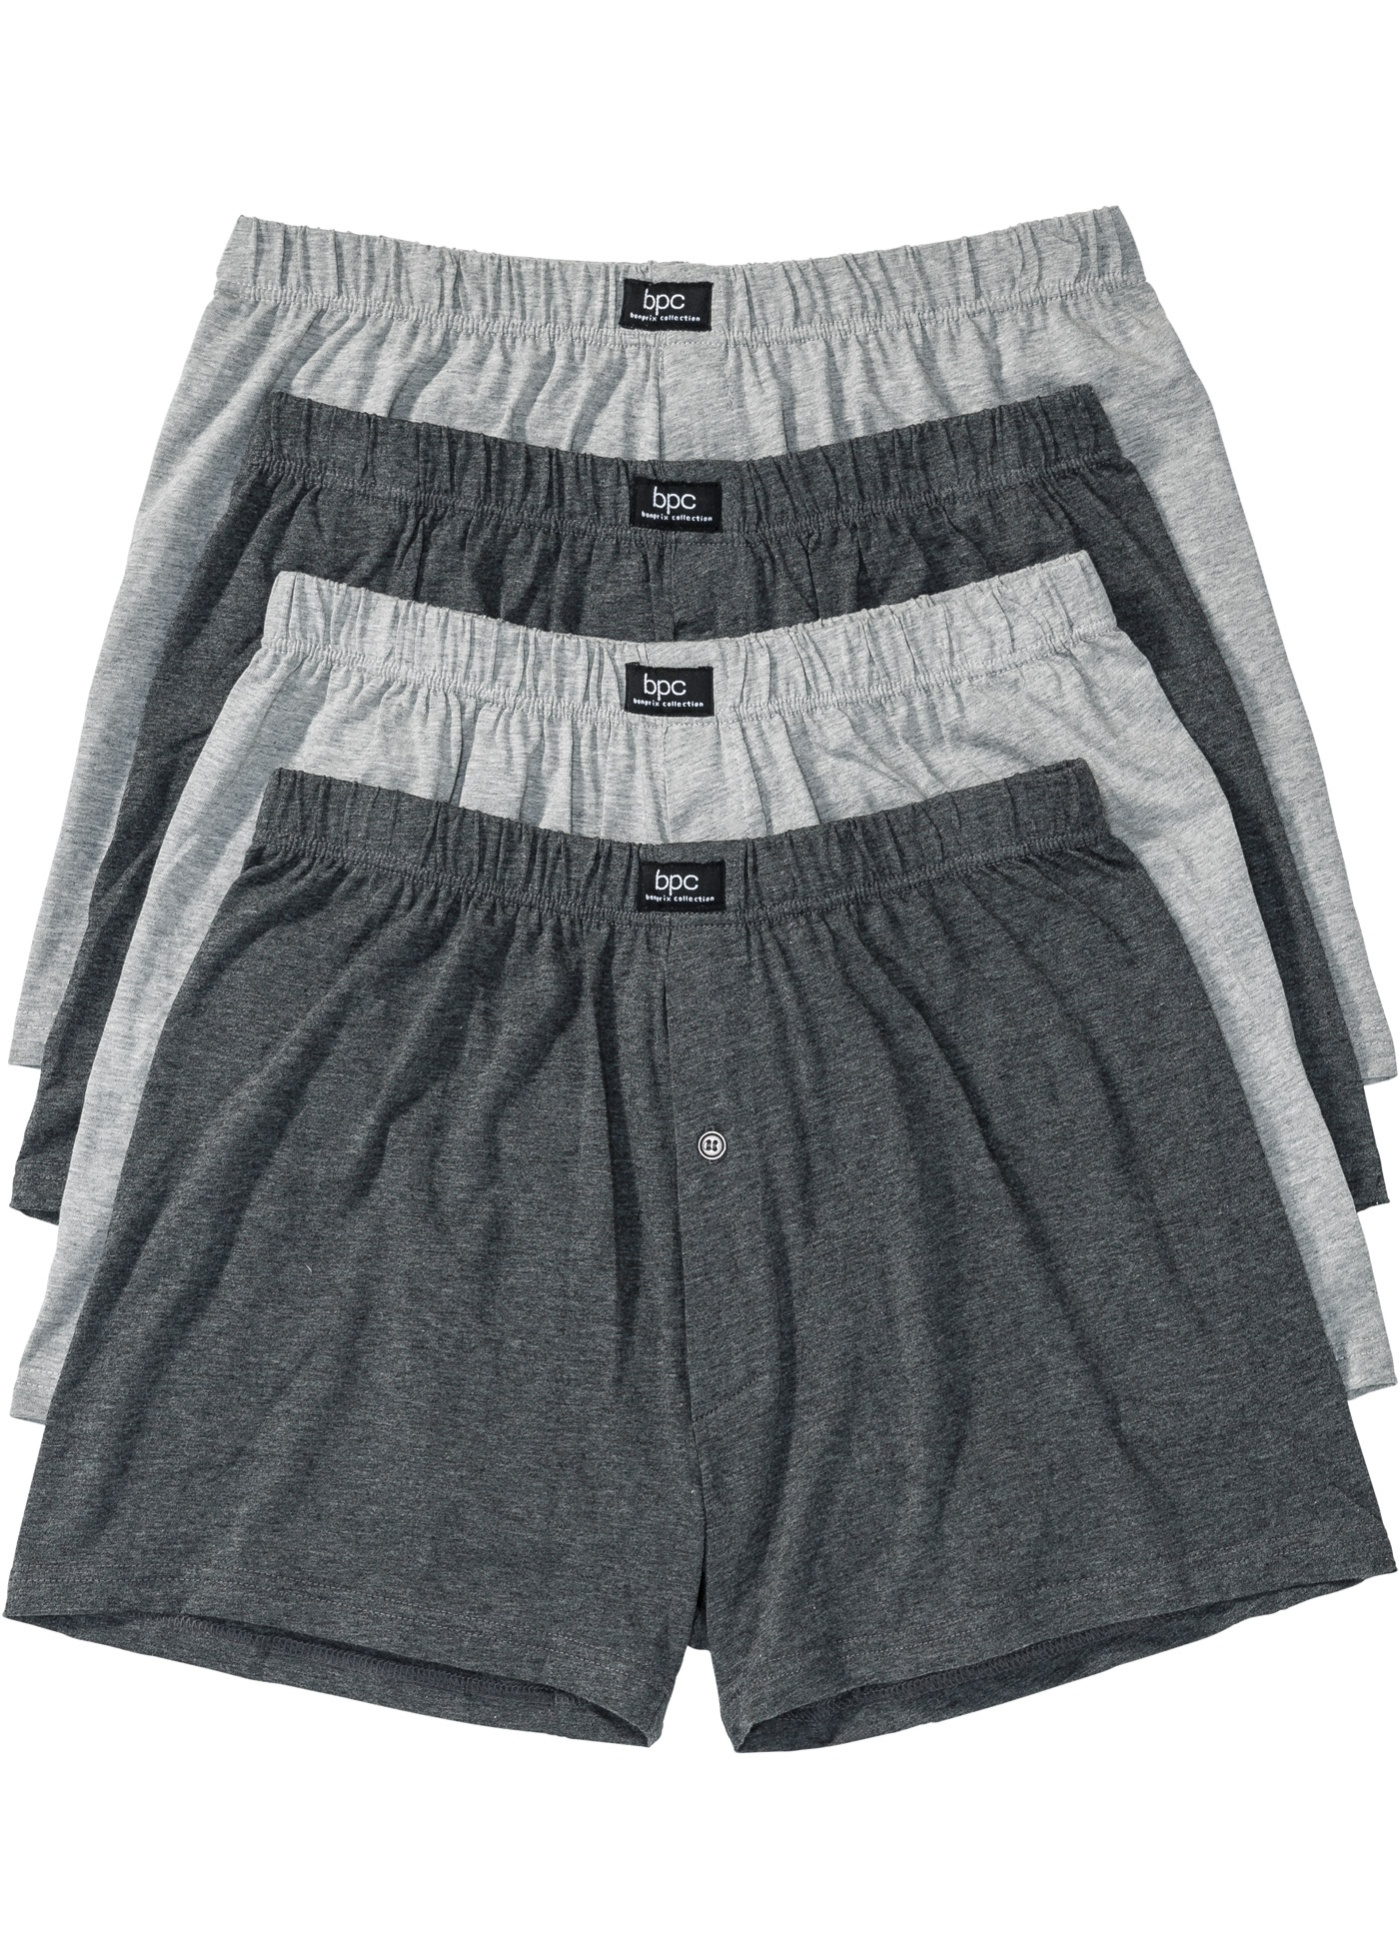 Boxer largo in jersey (pacco da 4) (Grigio) - bpc bonprix collection